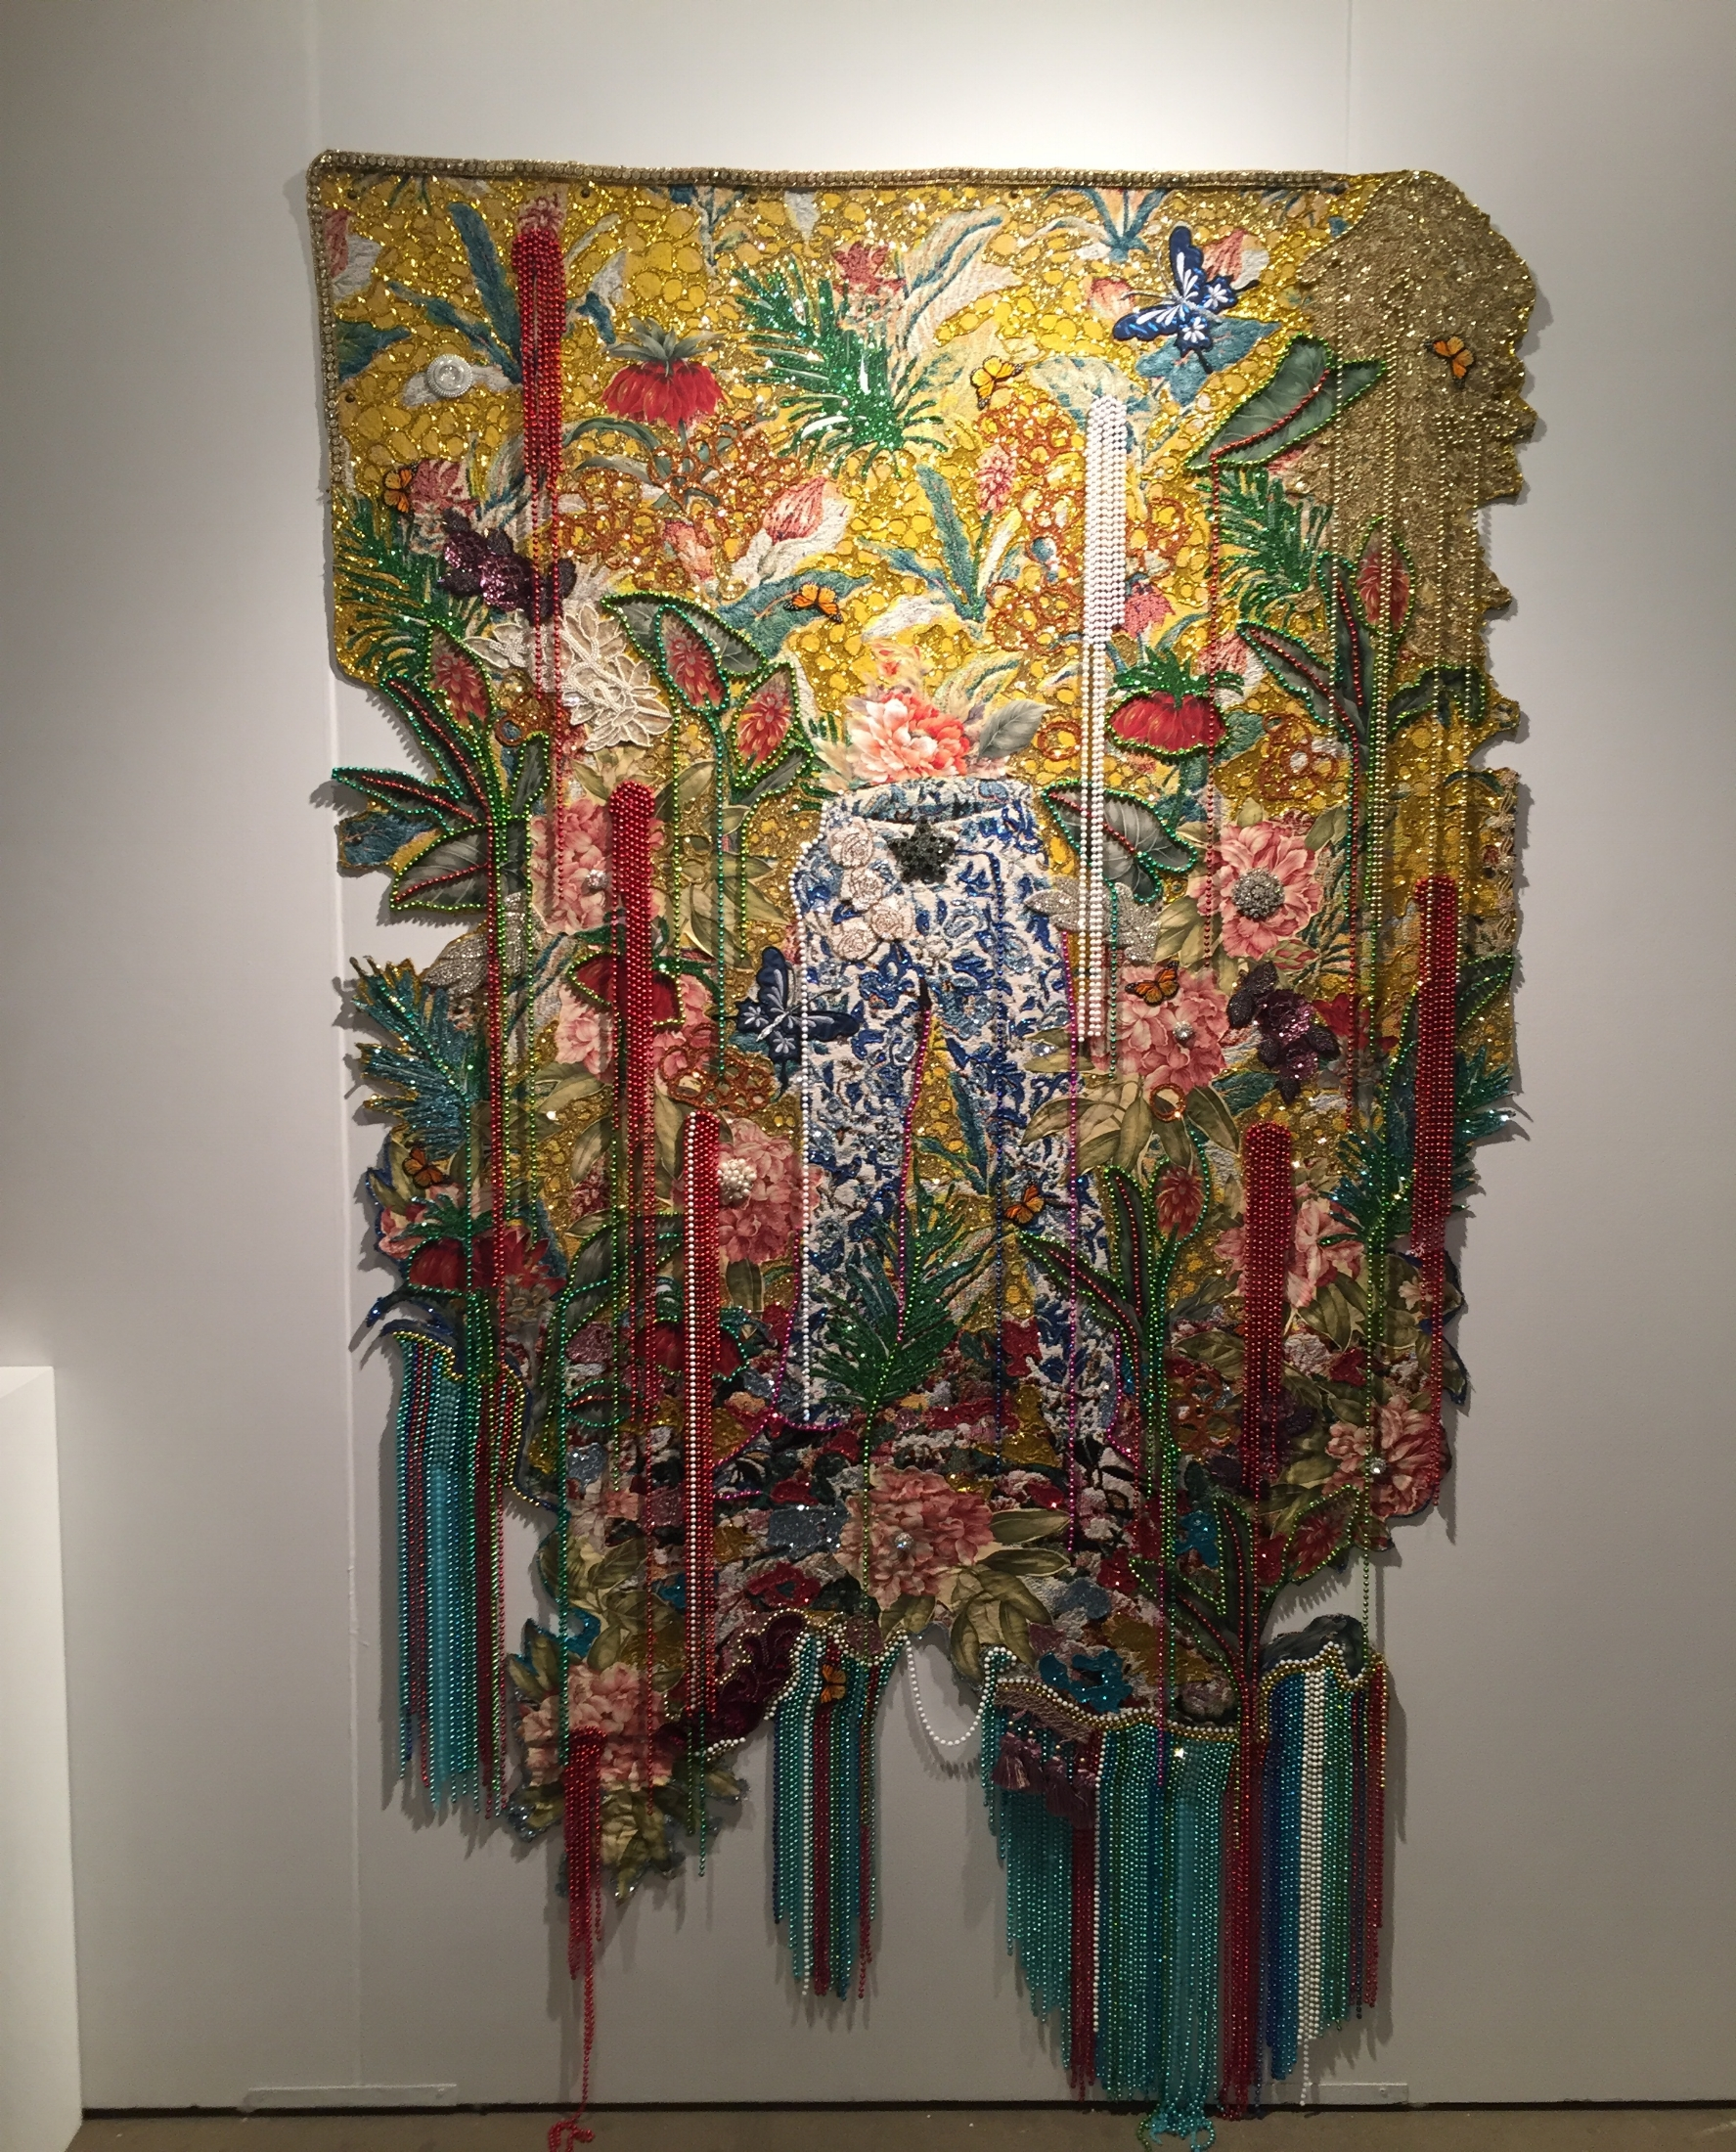 A significant wall tapestry from Ebony G Patterson at the Monique Meloche booth